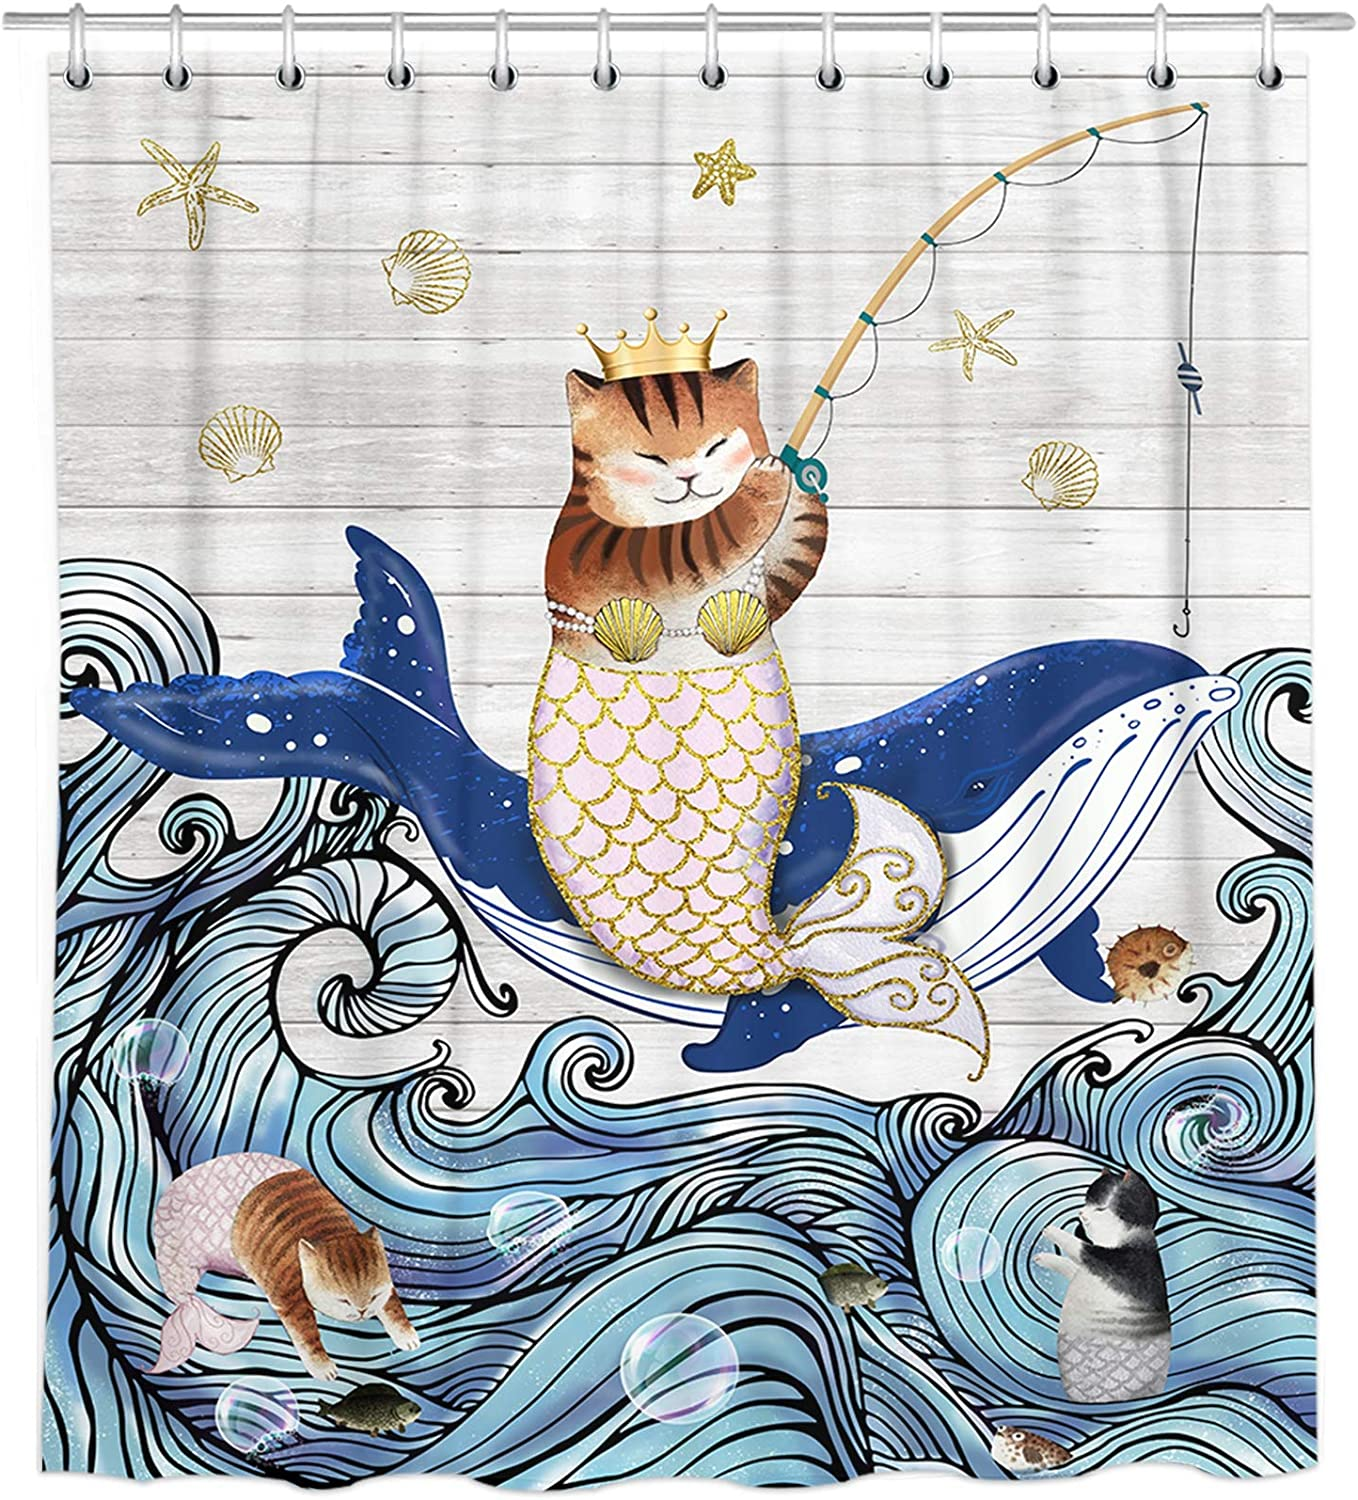 Bonsai Tree Cat Shower Curtains, Funny Cat Riding Whale with Mermaid Tail Cloth Shower Curtain in Bath, Farmhouse Wooden Japanese Wave Bathroom Shower Curtains with 12 Rings, Cute Home Decor 72x72